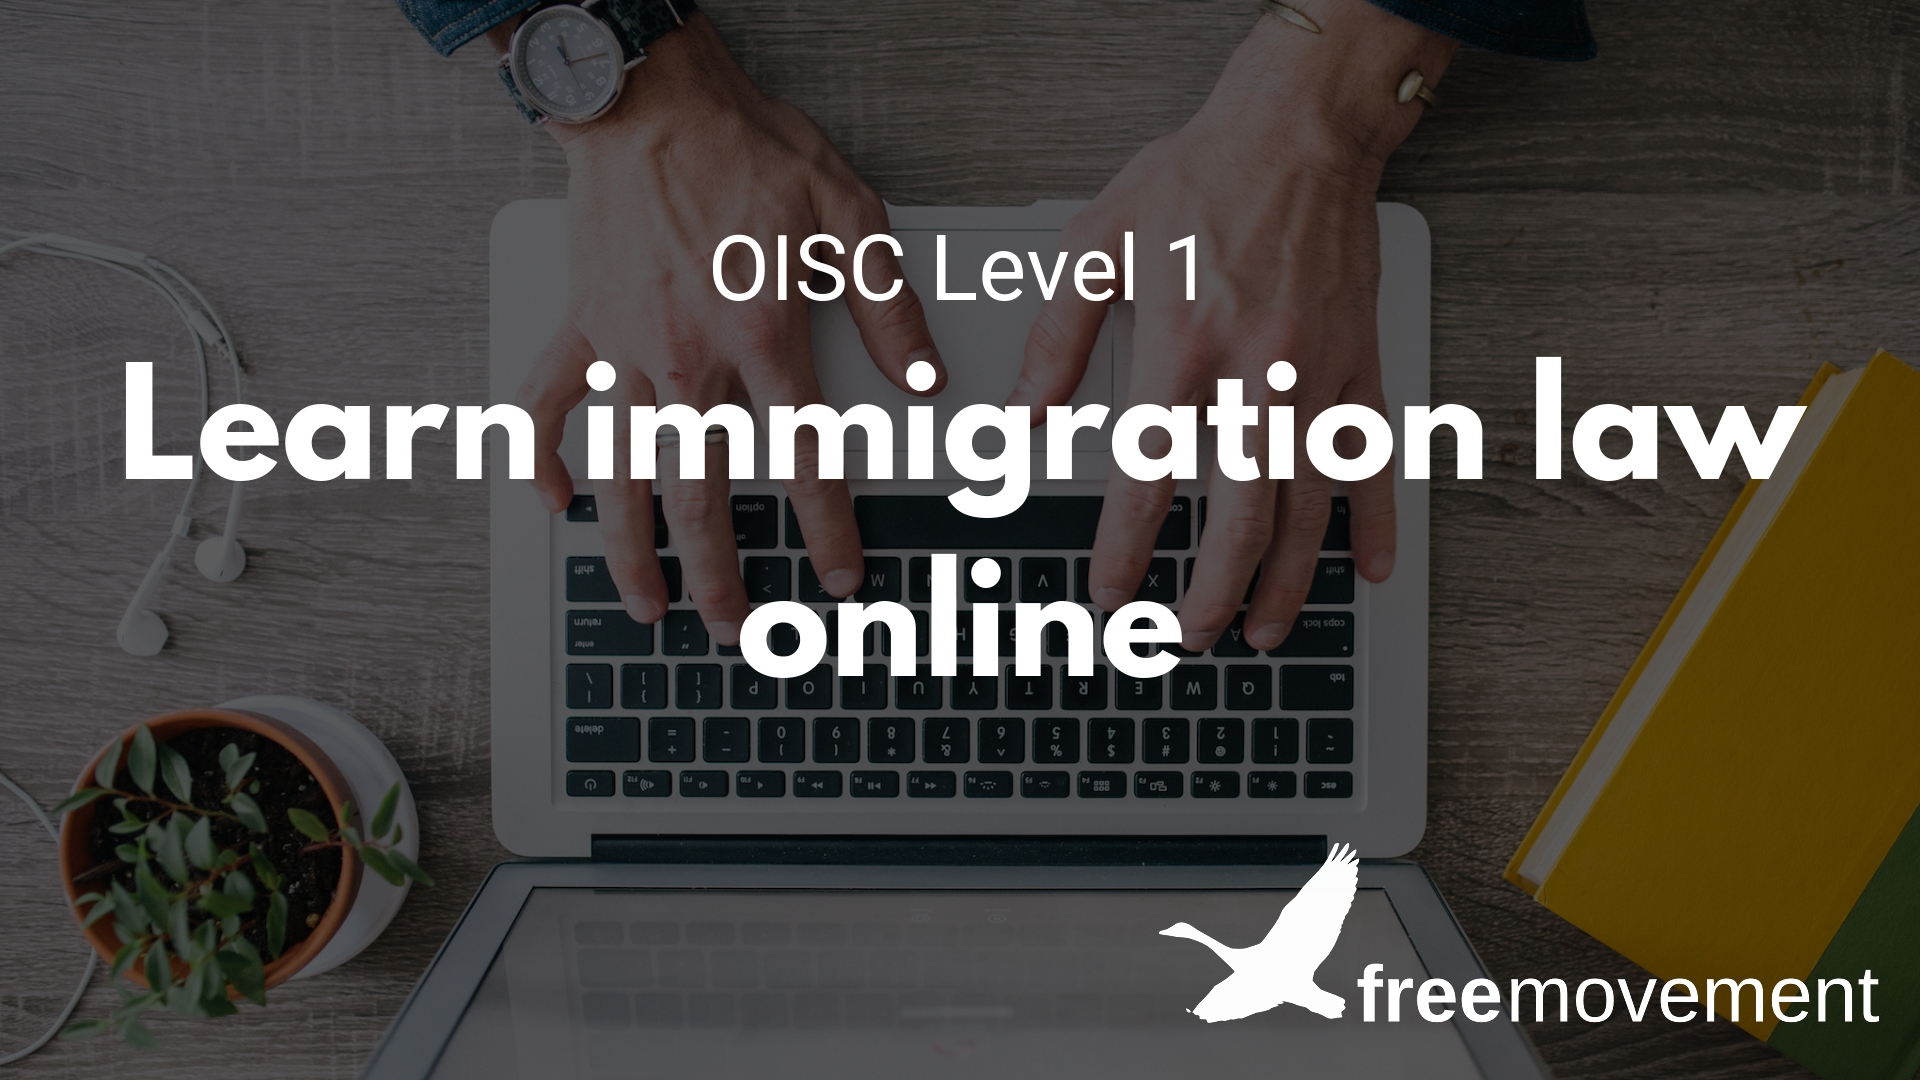 New learn immigration law course: perfect for OISC Level 1